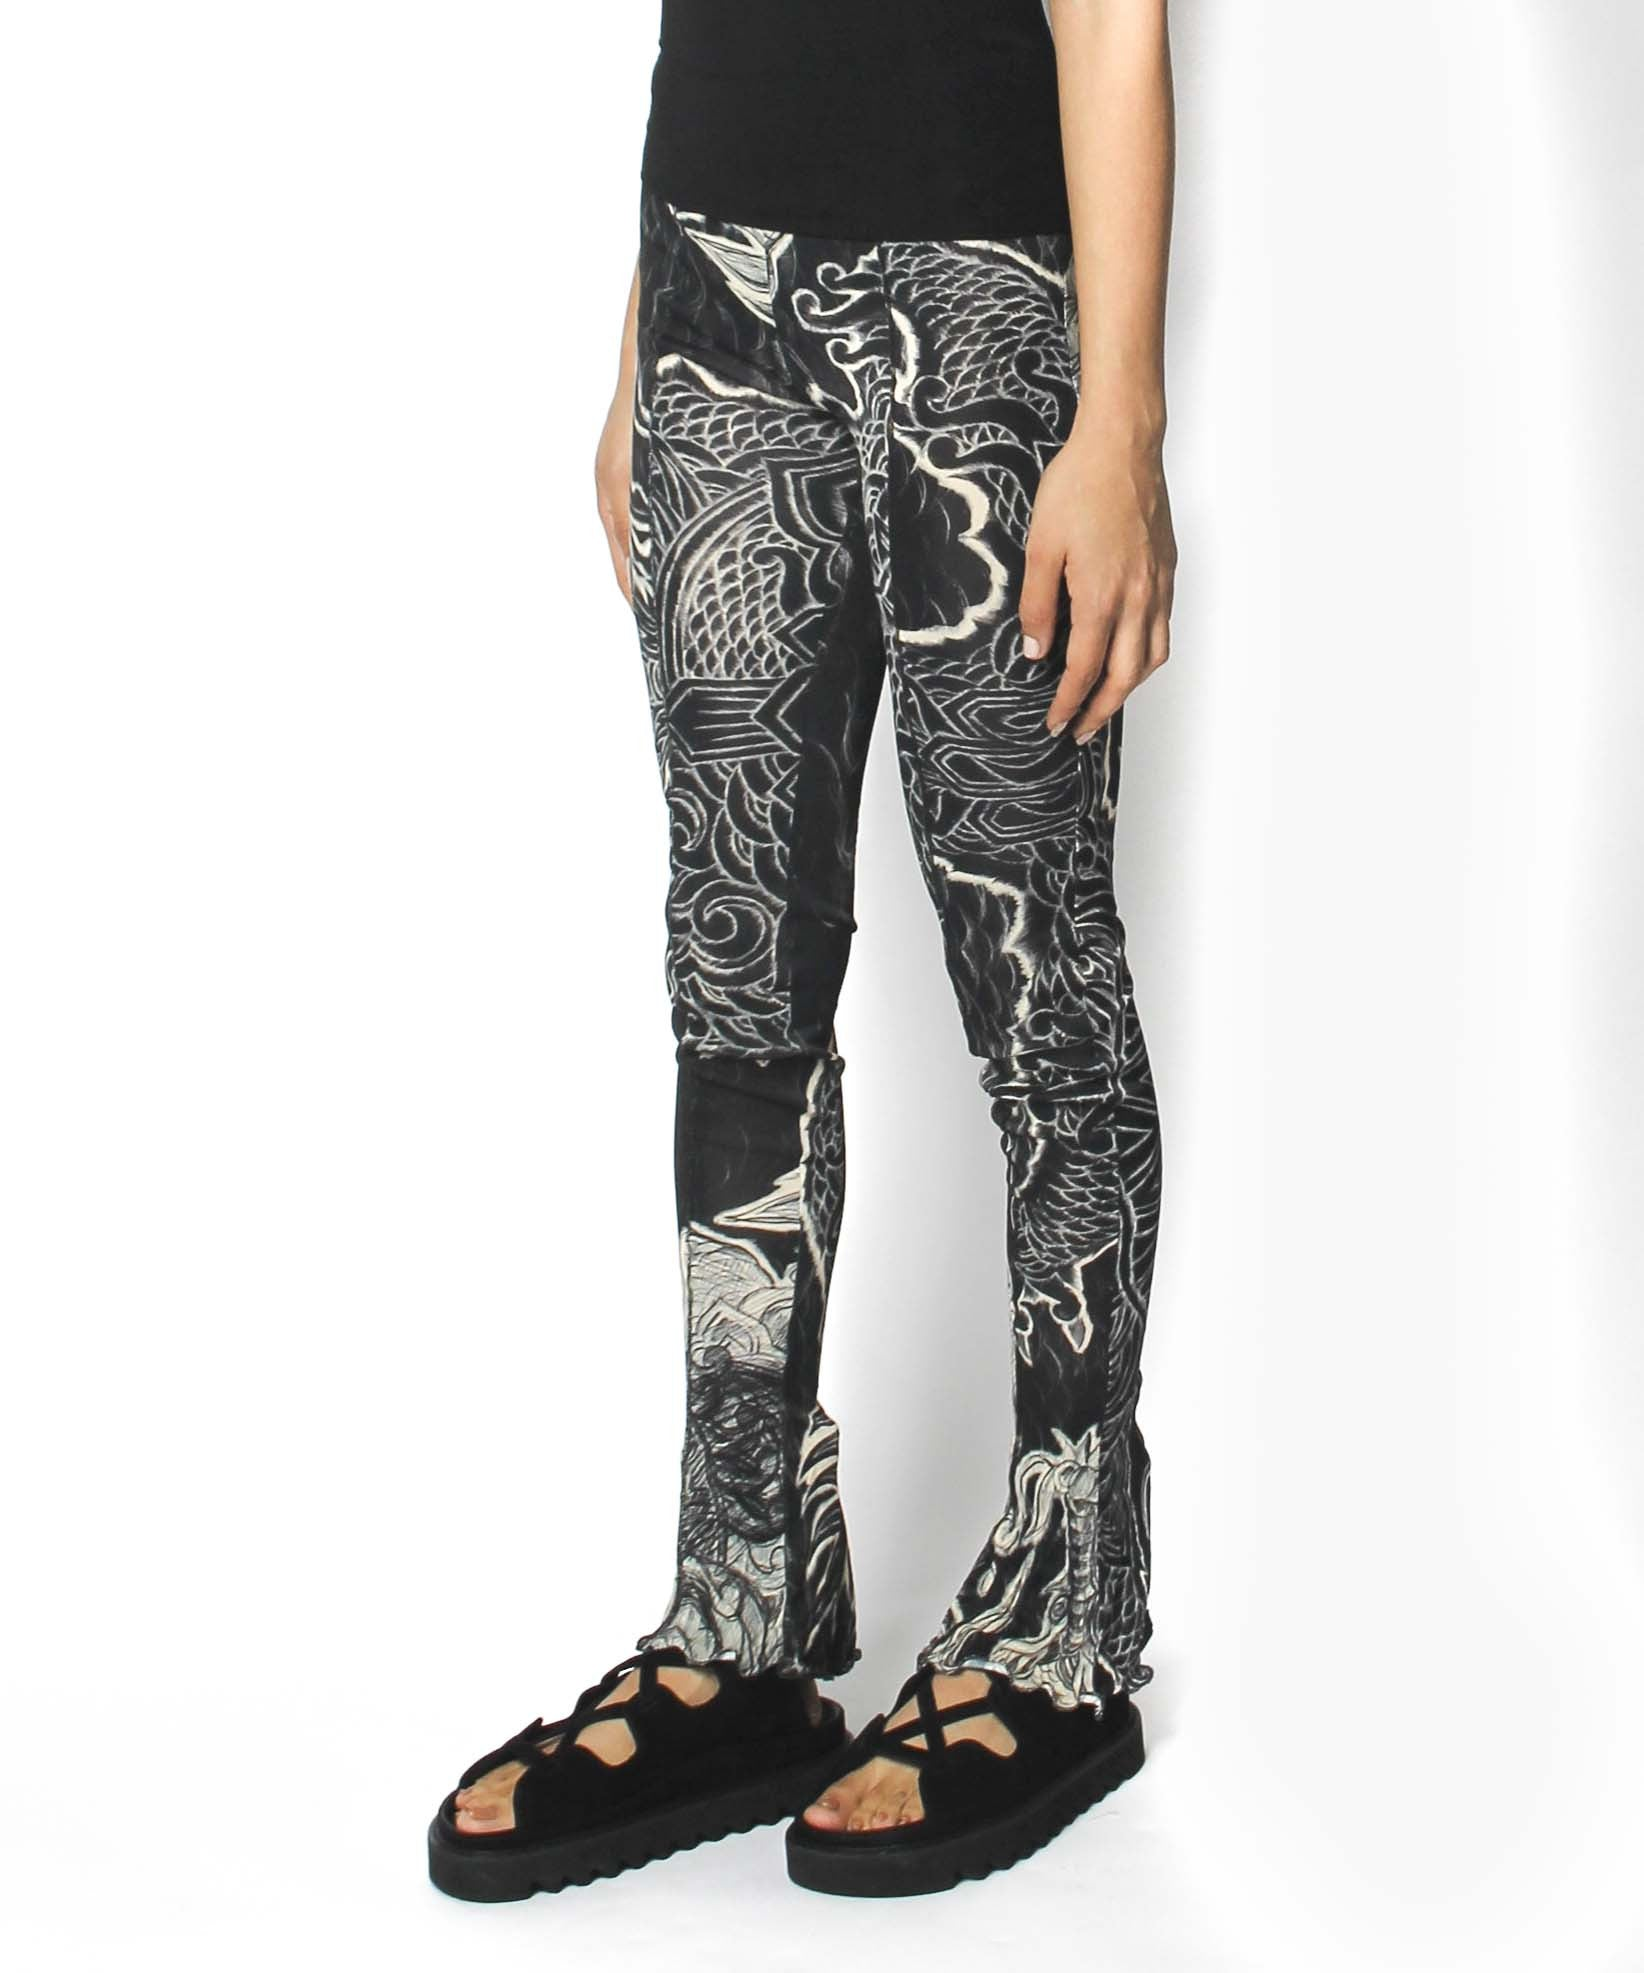 Jean Paul Gaultier Gray Koi Fish Printed Stretch Pants